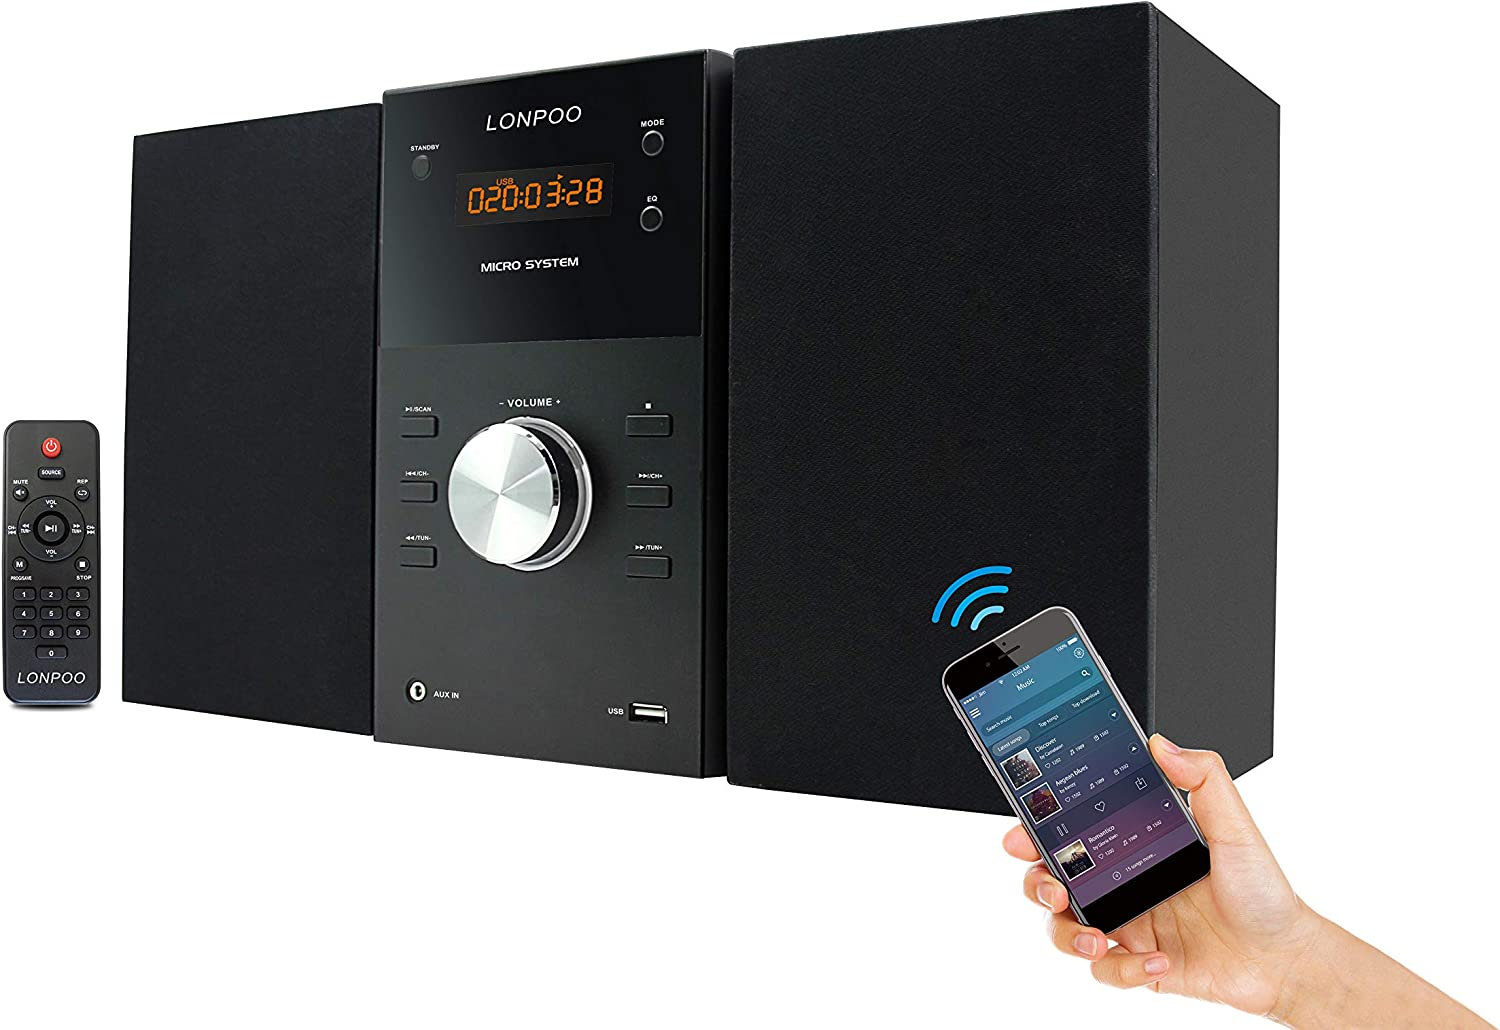 LONPOO Stereo Shelf System Hi-Fi High order Sound NEW before selling Player RMS CD 30W Speaker